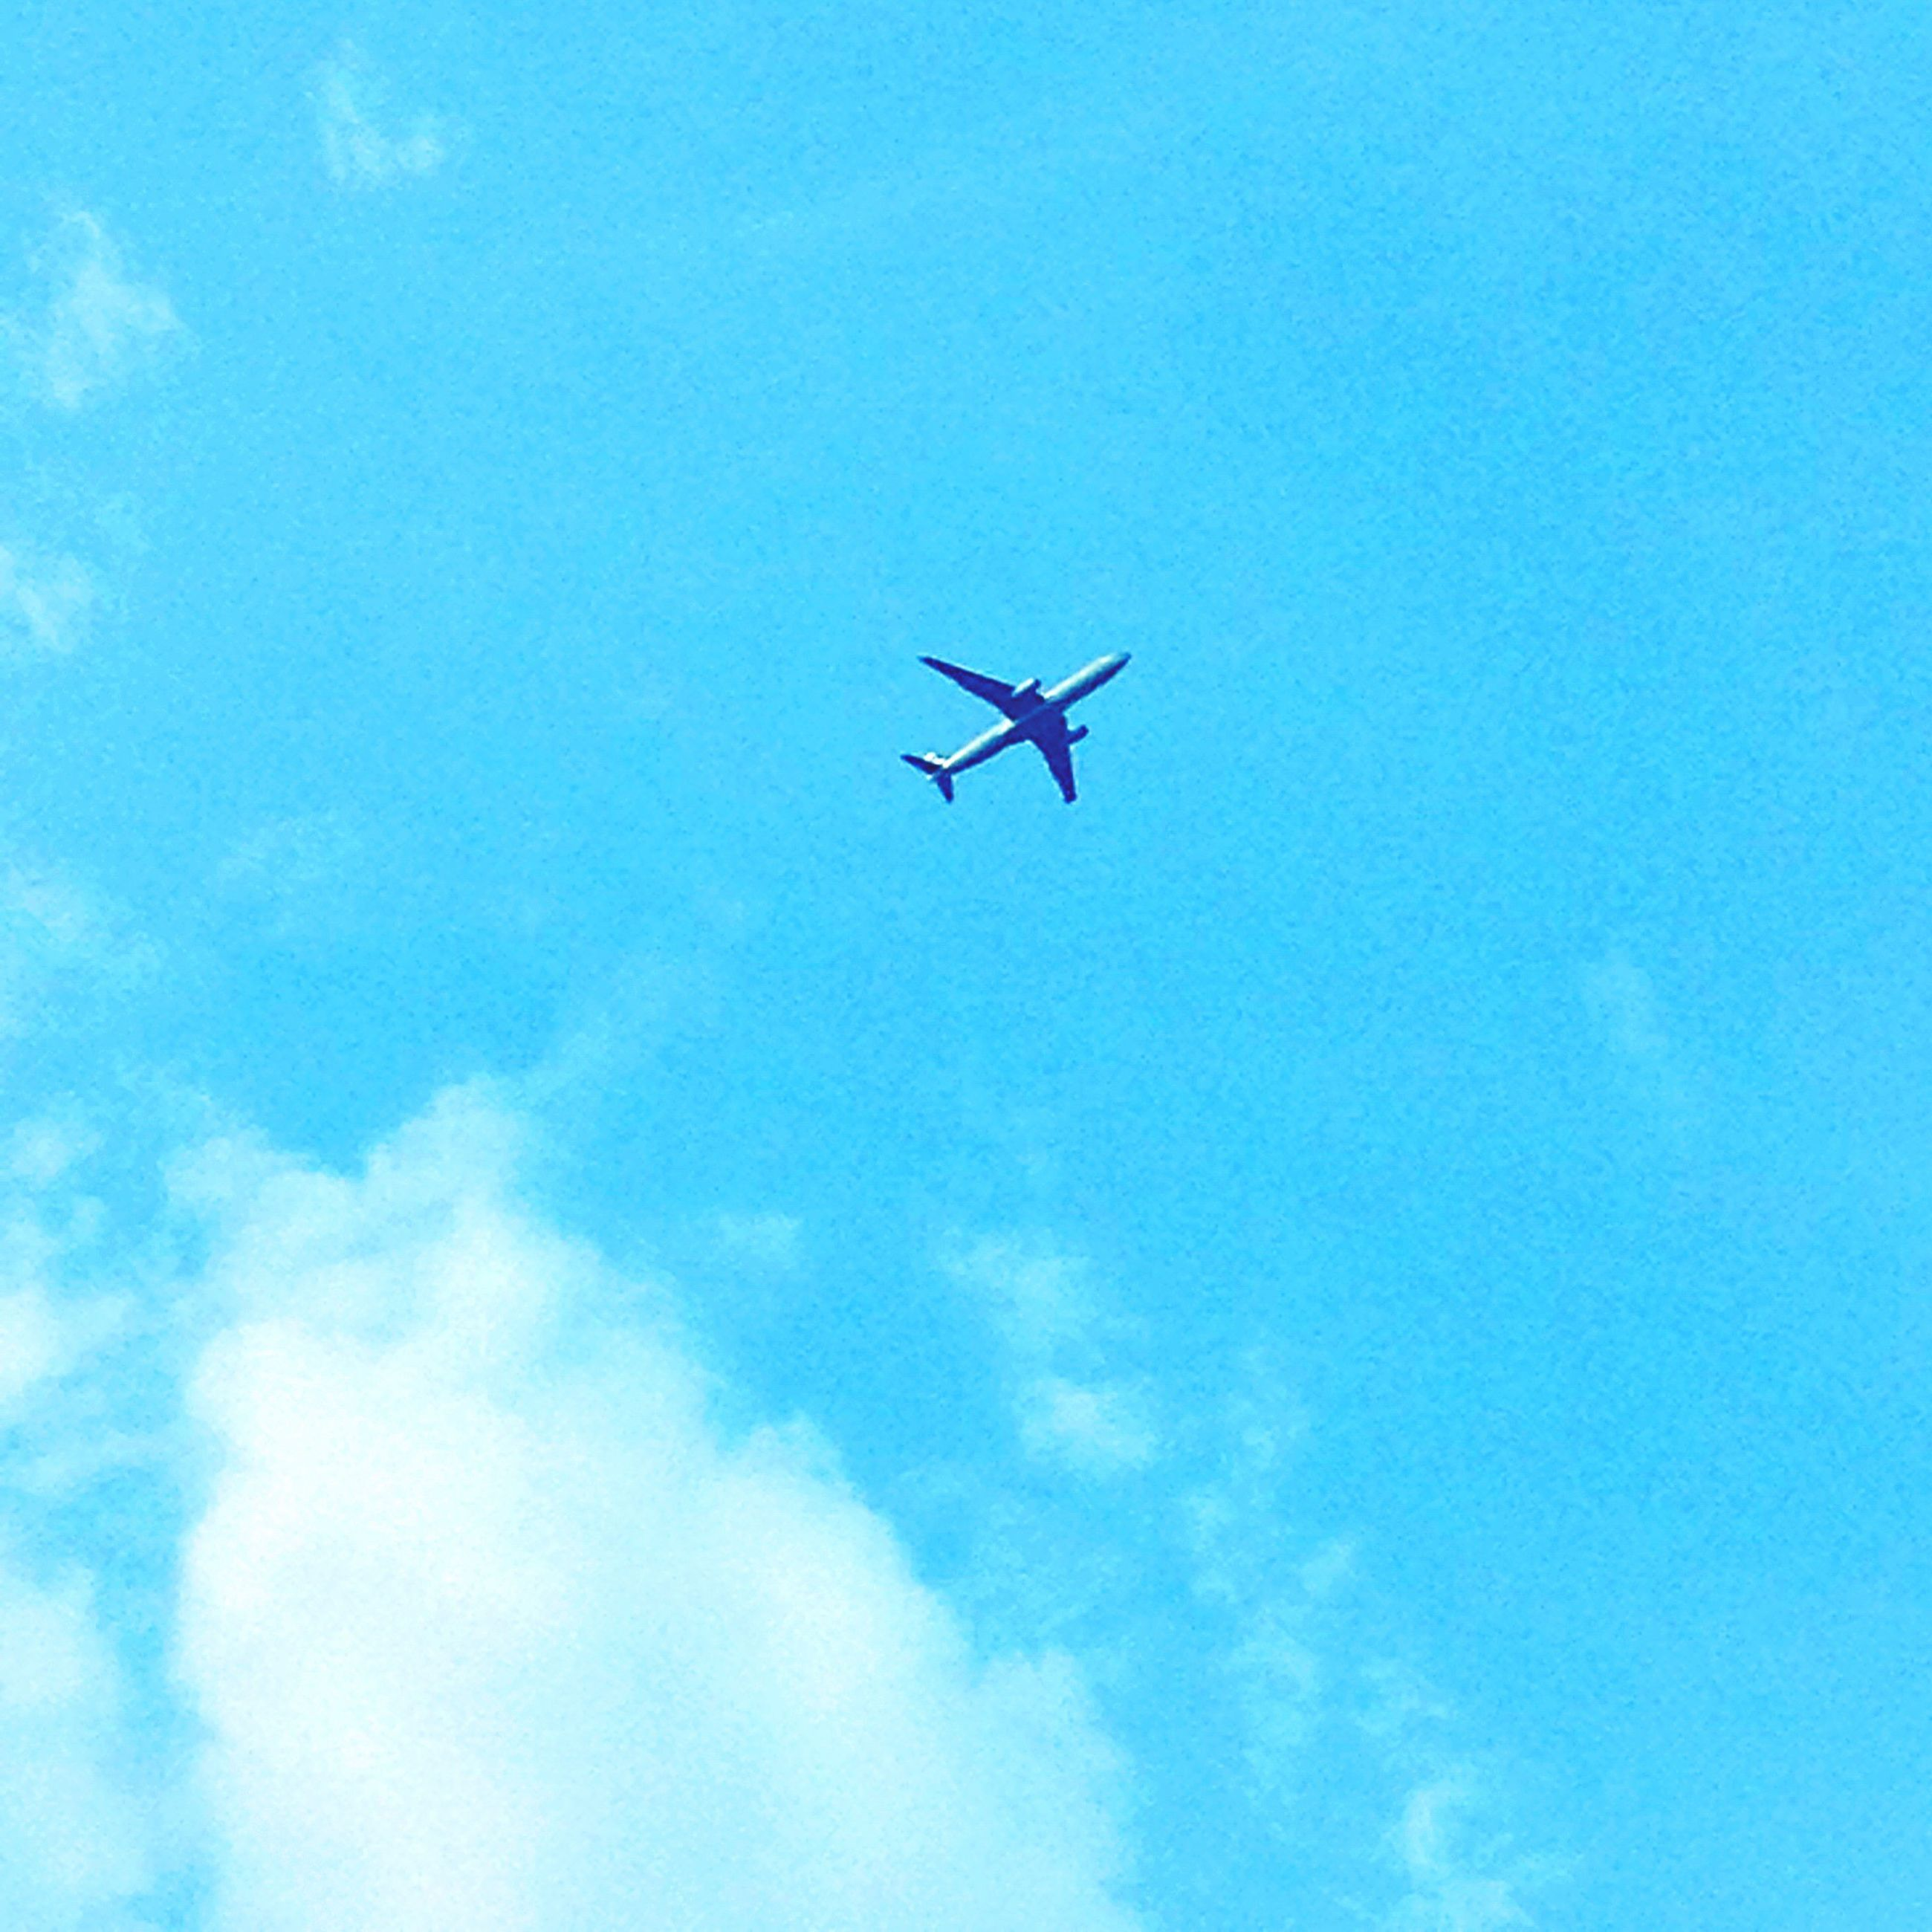 flying, airplane, air vehicle, transportation, mode of transport, low angle view, mid-air, blue, sky, on the move, journey, public transportation, travel, commercial airplane, helicopter, cloud - sky, aircraft, day, copy space, airways